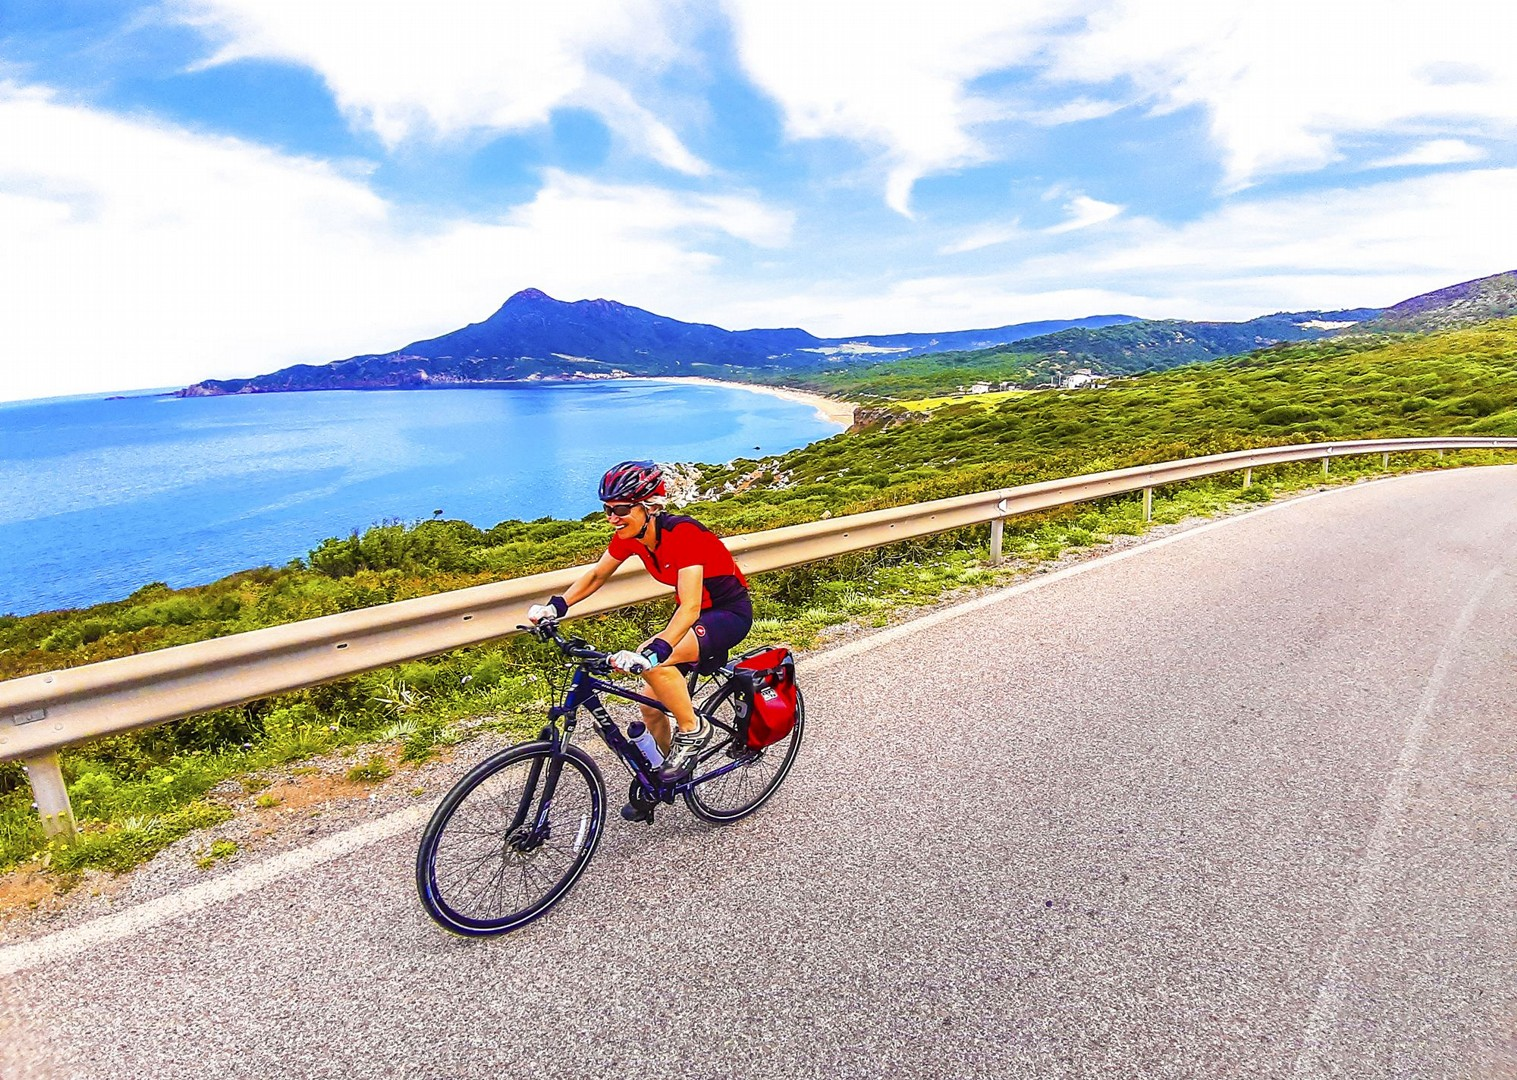 self-guided-leisure-cycling-sardinia-holiday-island-flavours.jpg - Italy - Sardinia - Island Flavours - Self-Guided Leisure Cycling Holiday - Leisure Cycling